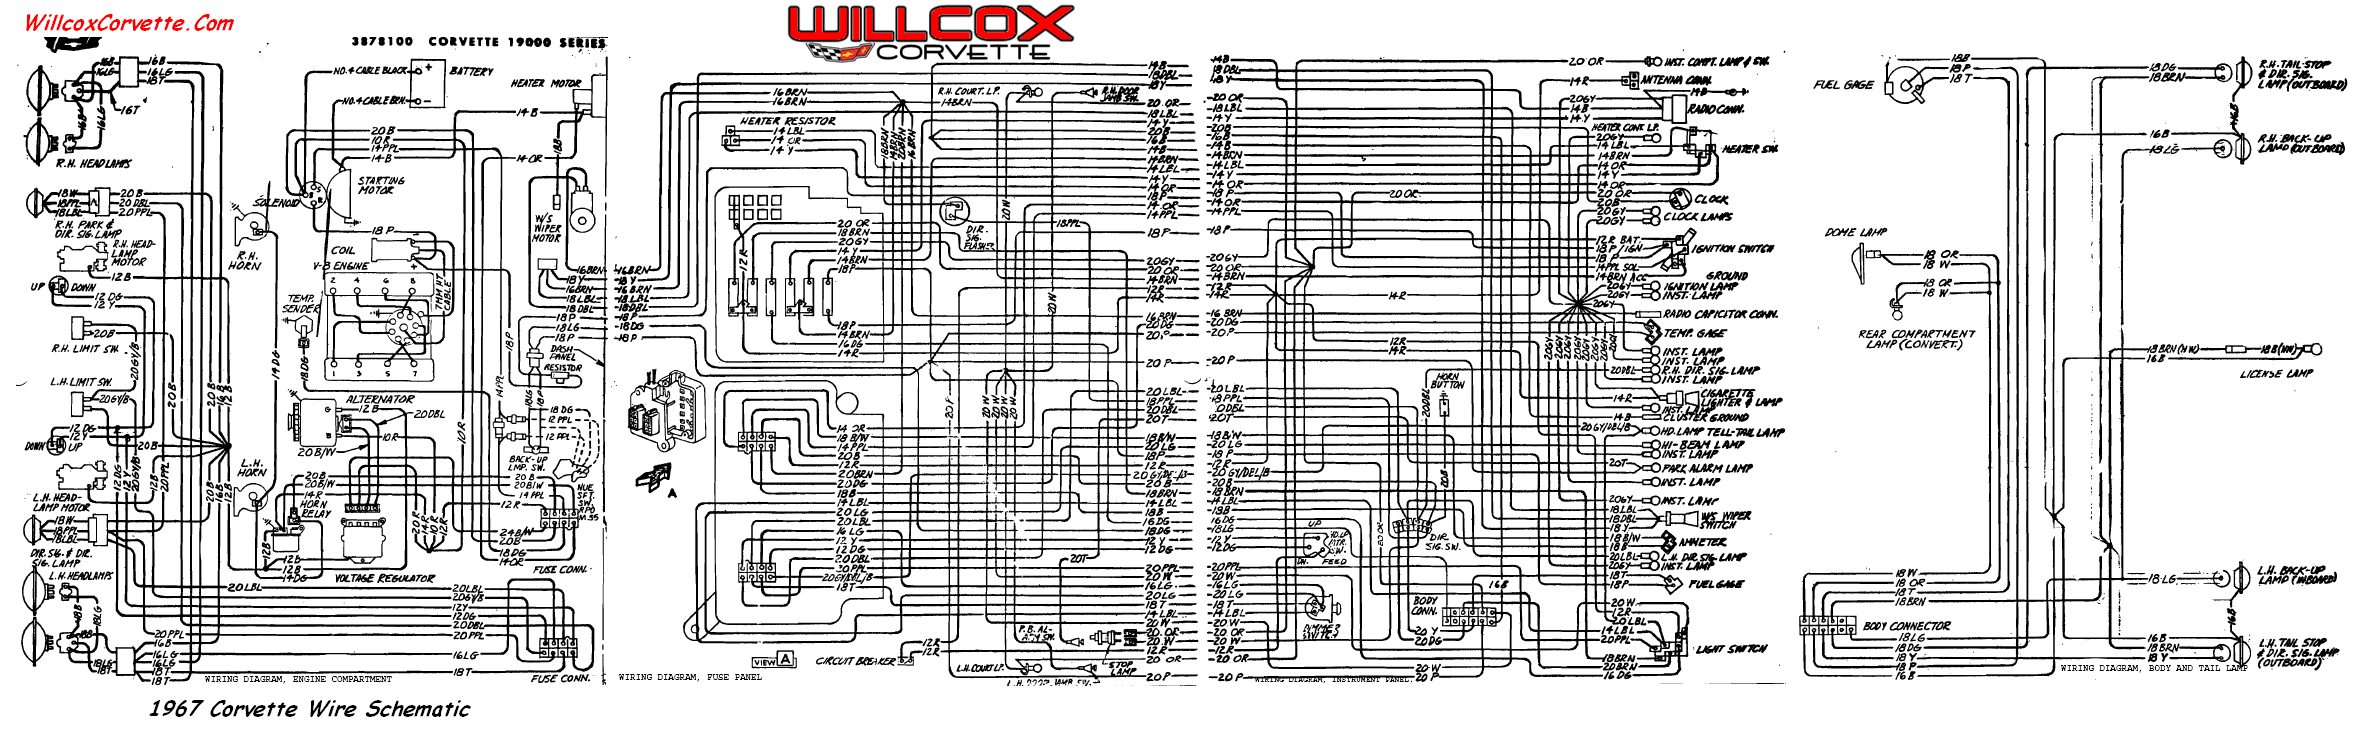 1966 Corvette Horn Wiring Diagram Data Library 82 Chevy Pickup Ac 1980 Rh Komagoma Co 1979 Schematic 1968